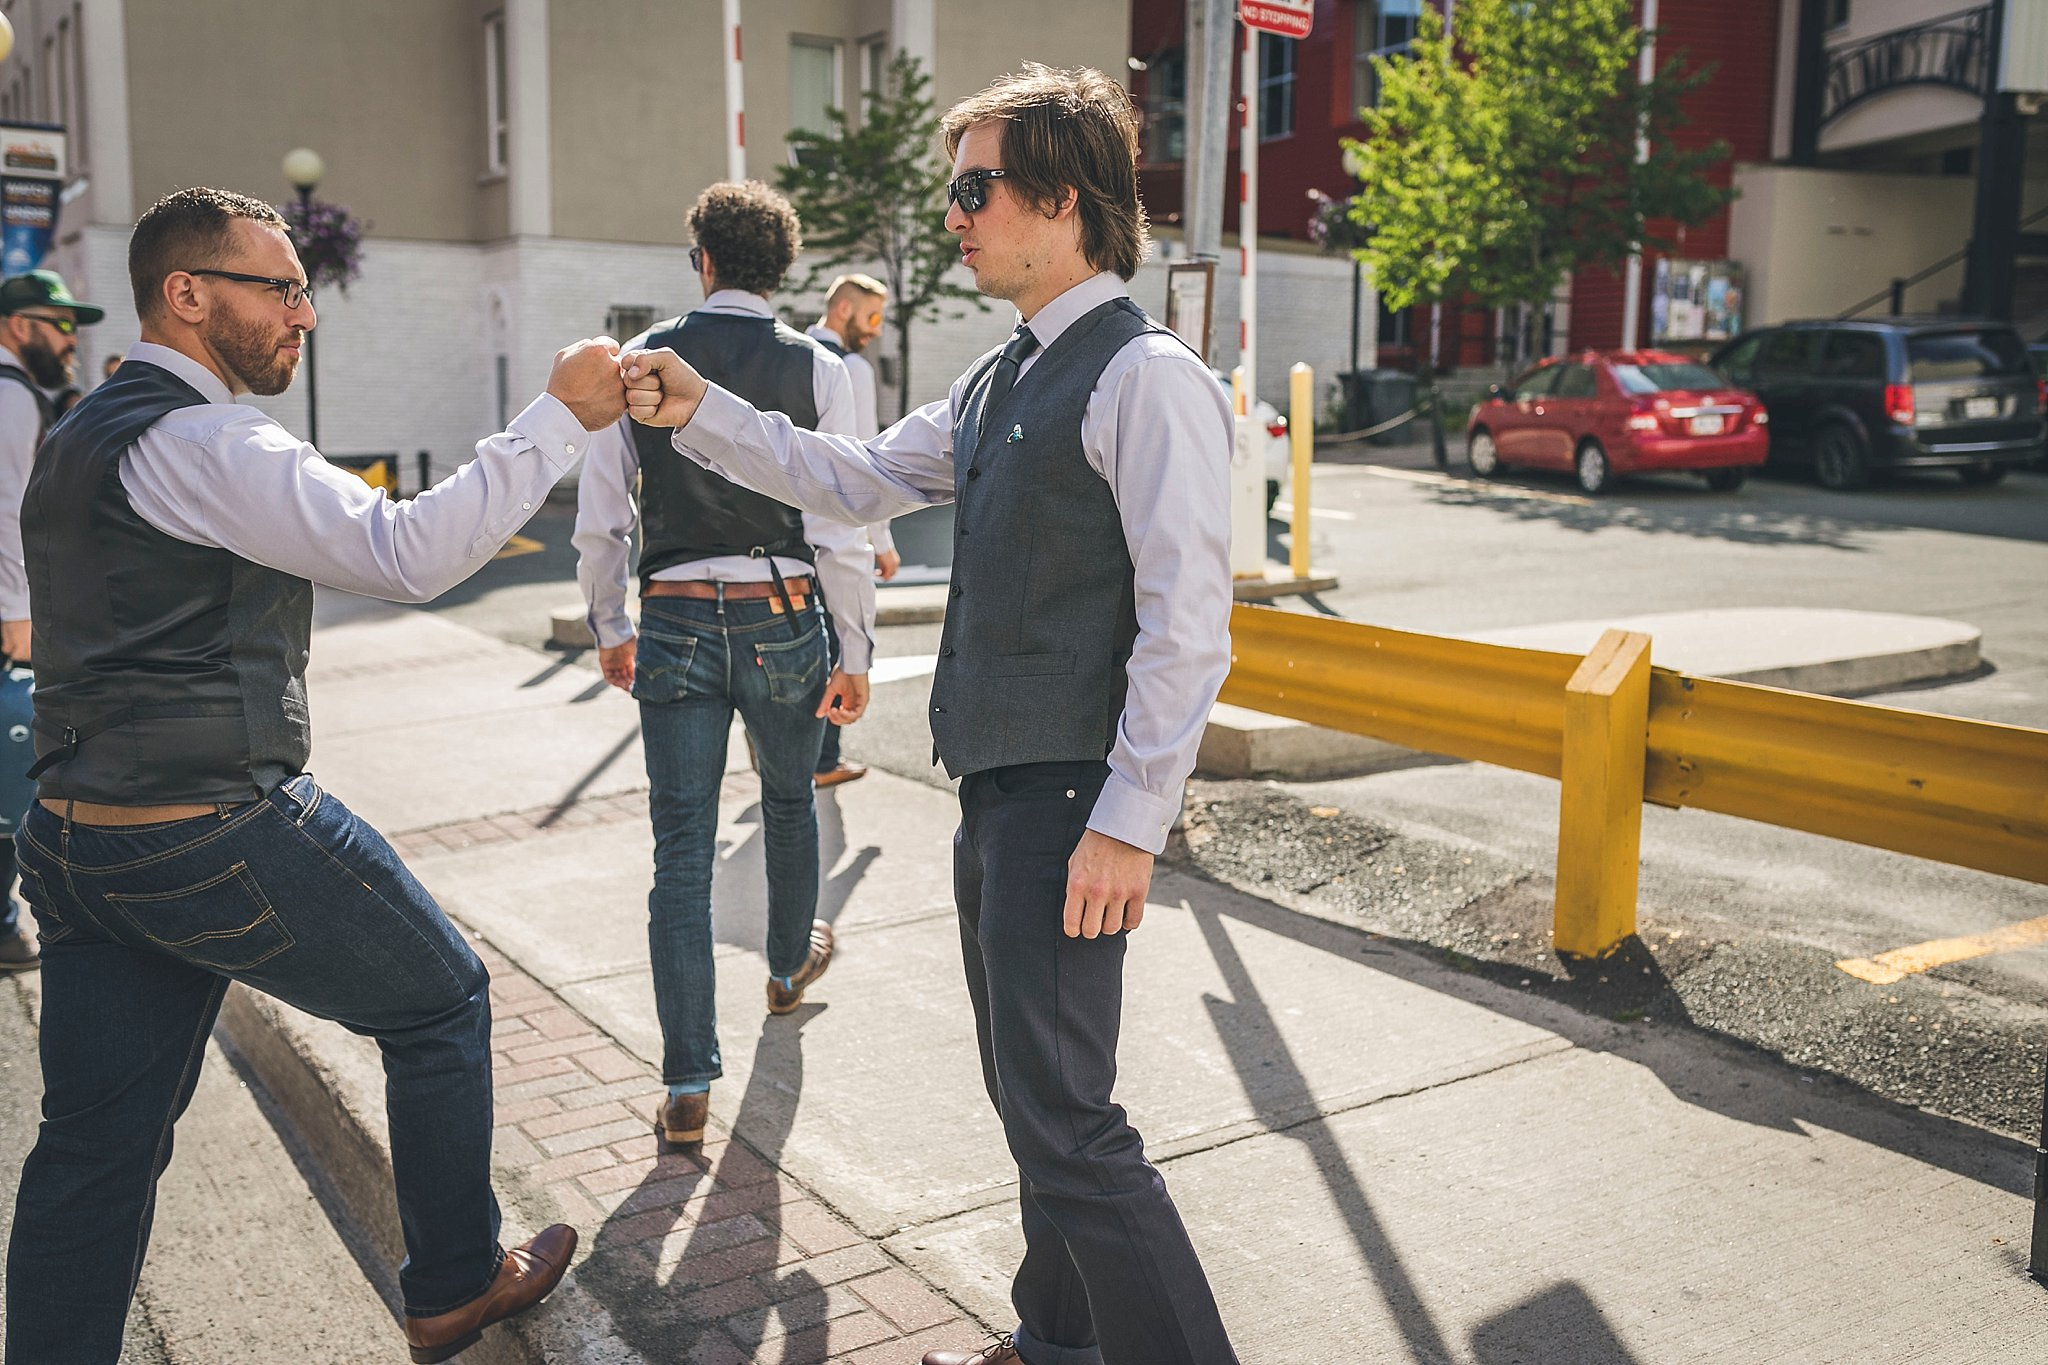 Groom and his friends carry on before his wedding in St. John's, Newfoundland